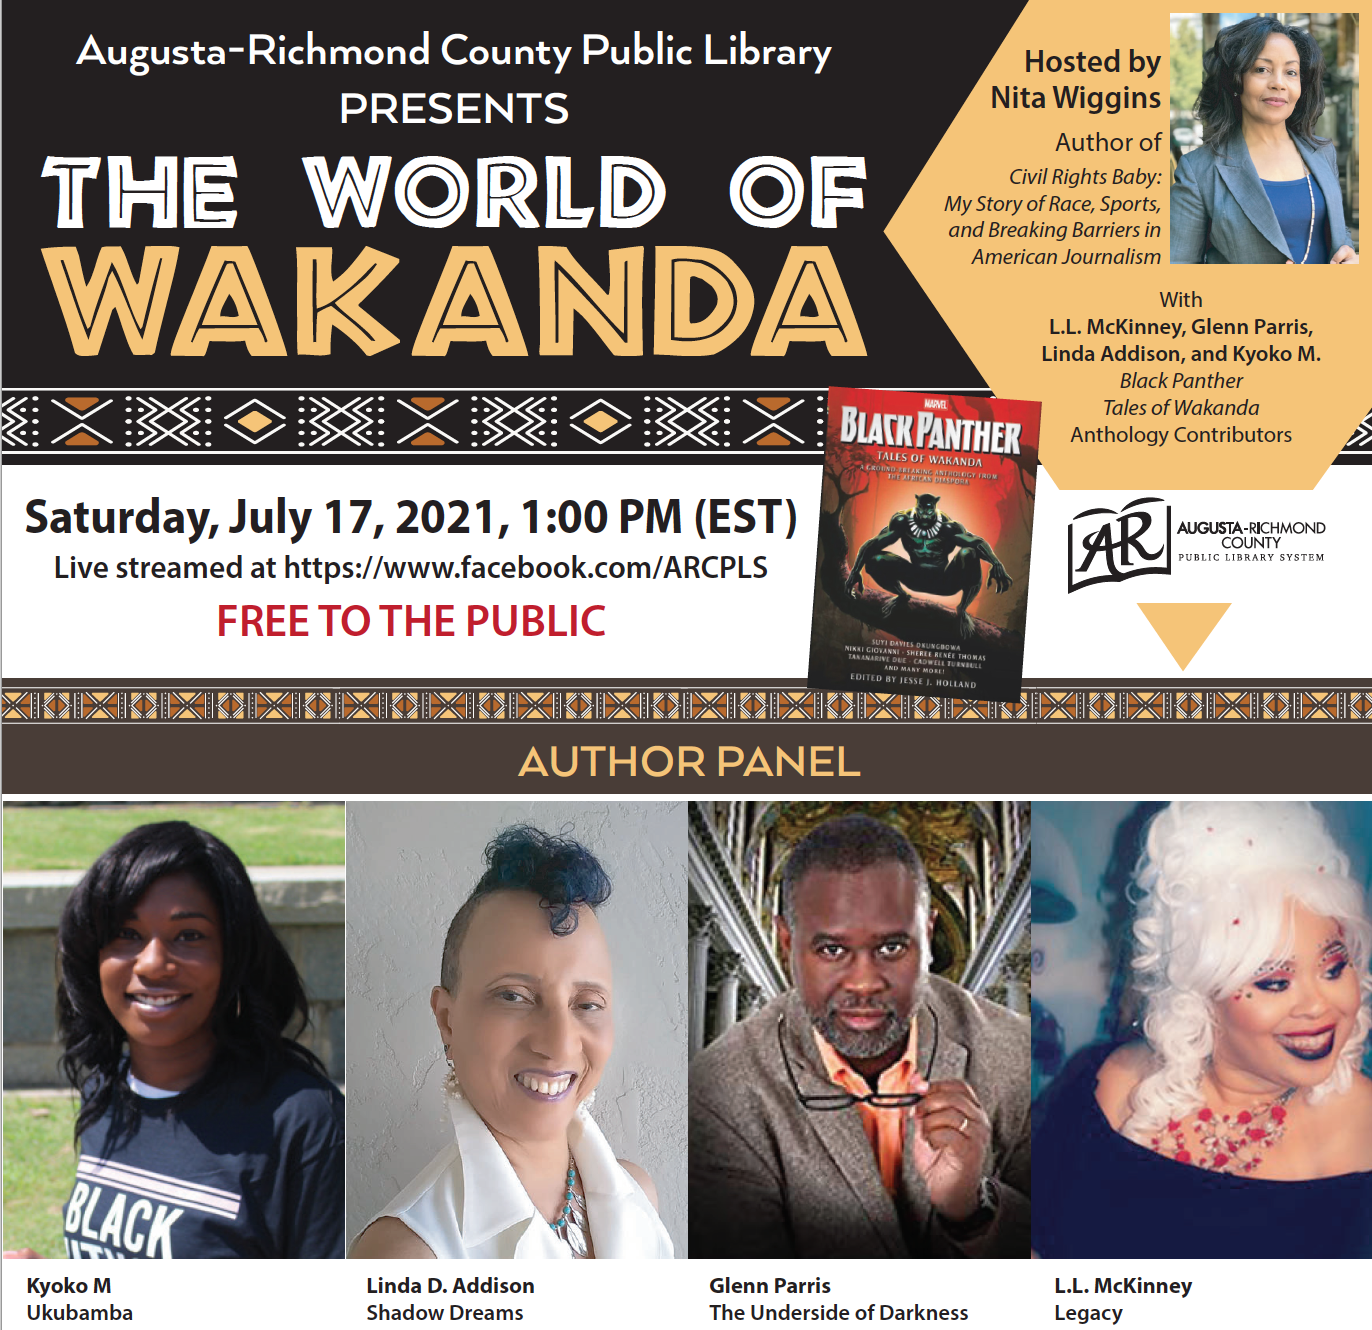 event flyer with author photos